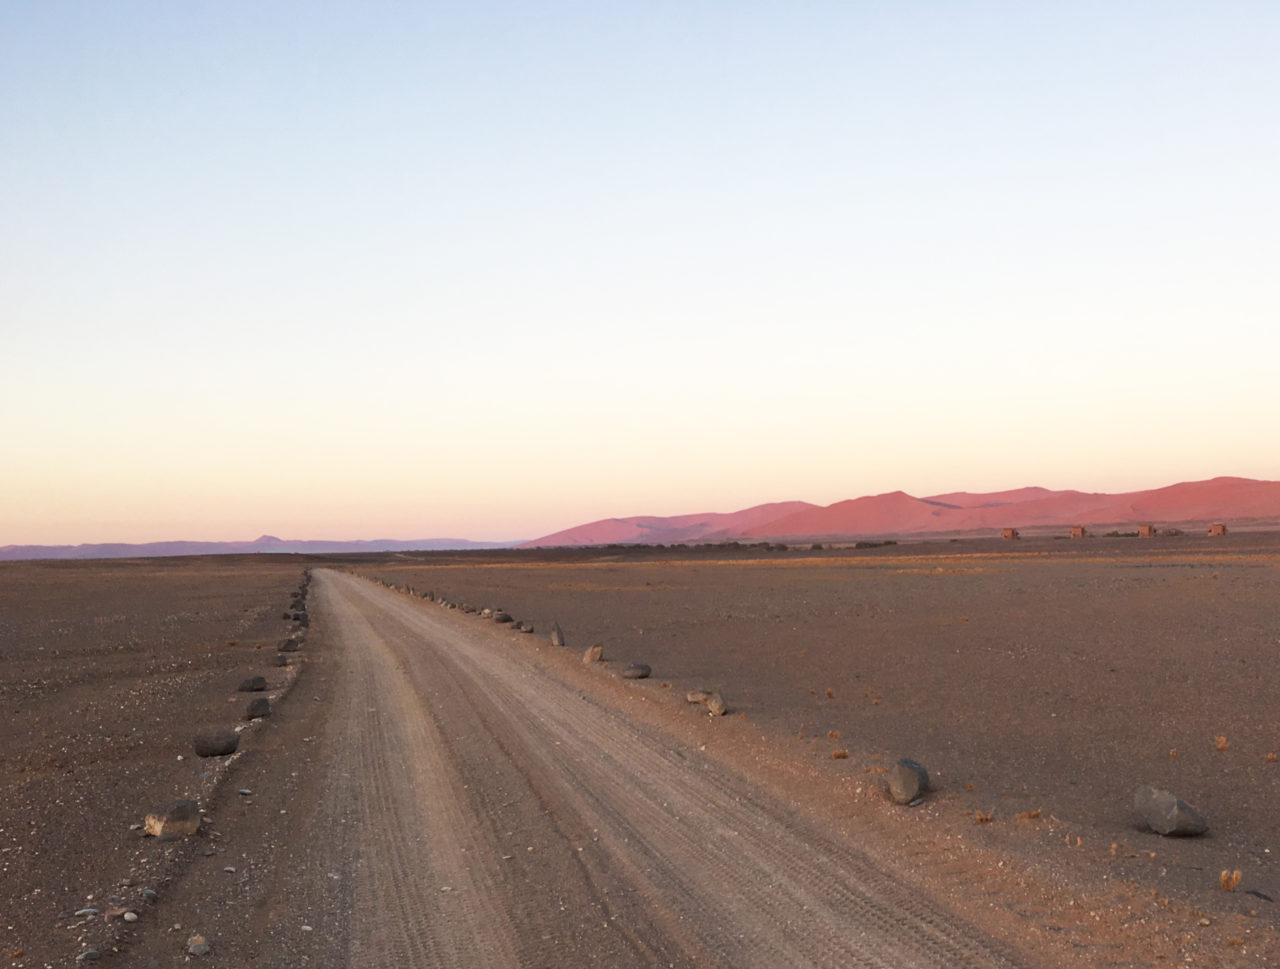 kulala_wilderness_reserve_road_sossusvlei